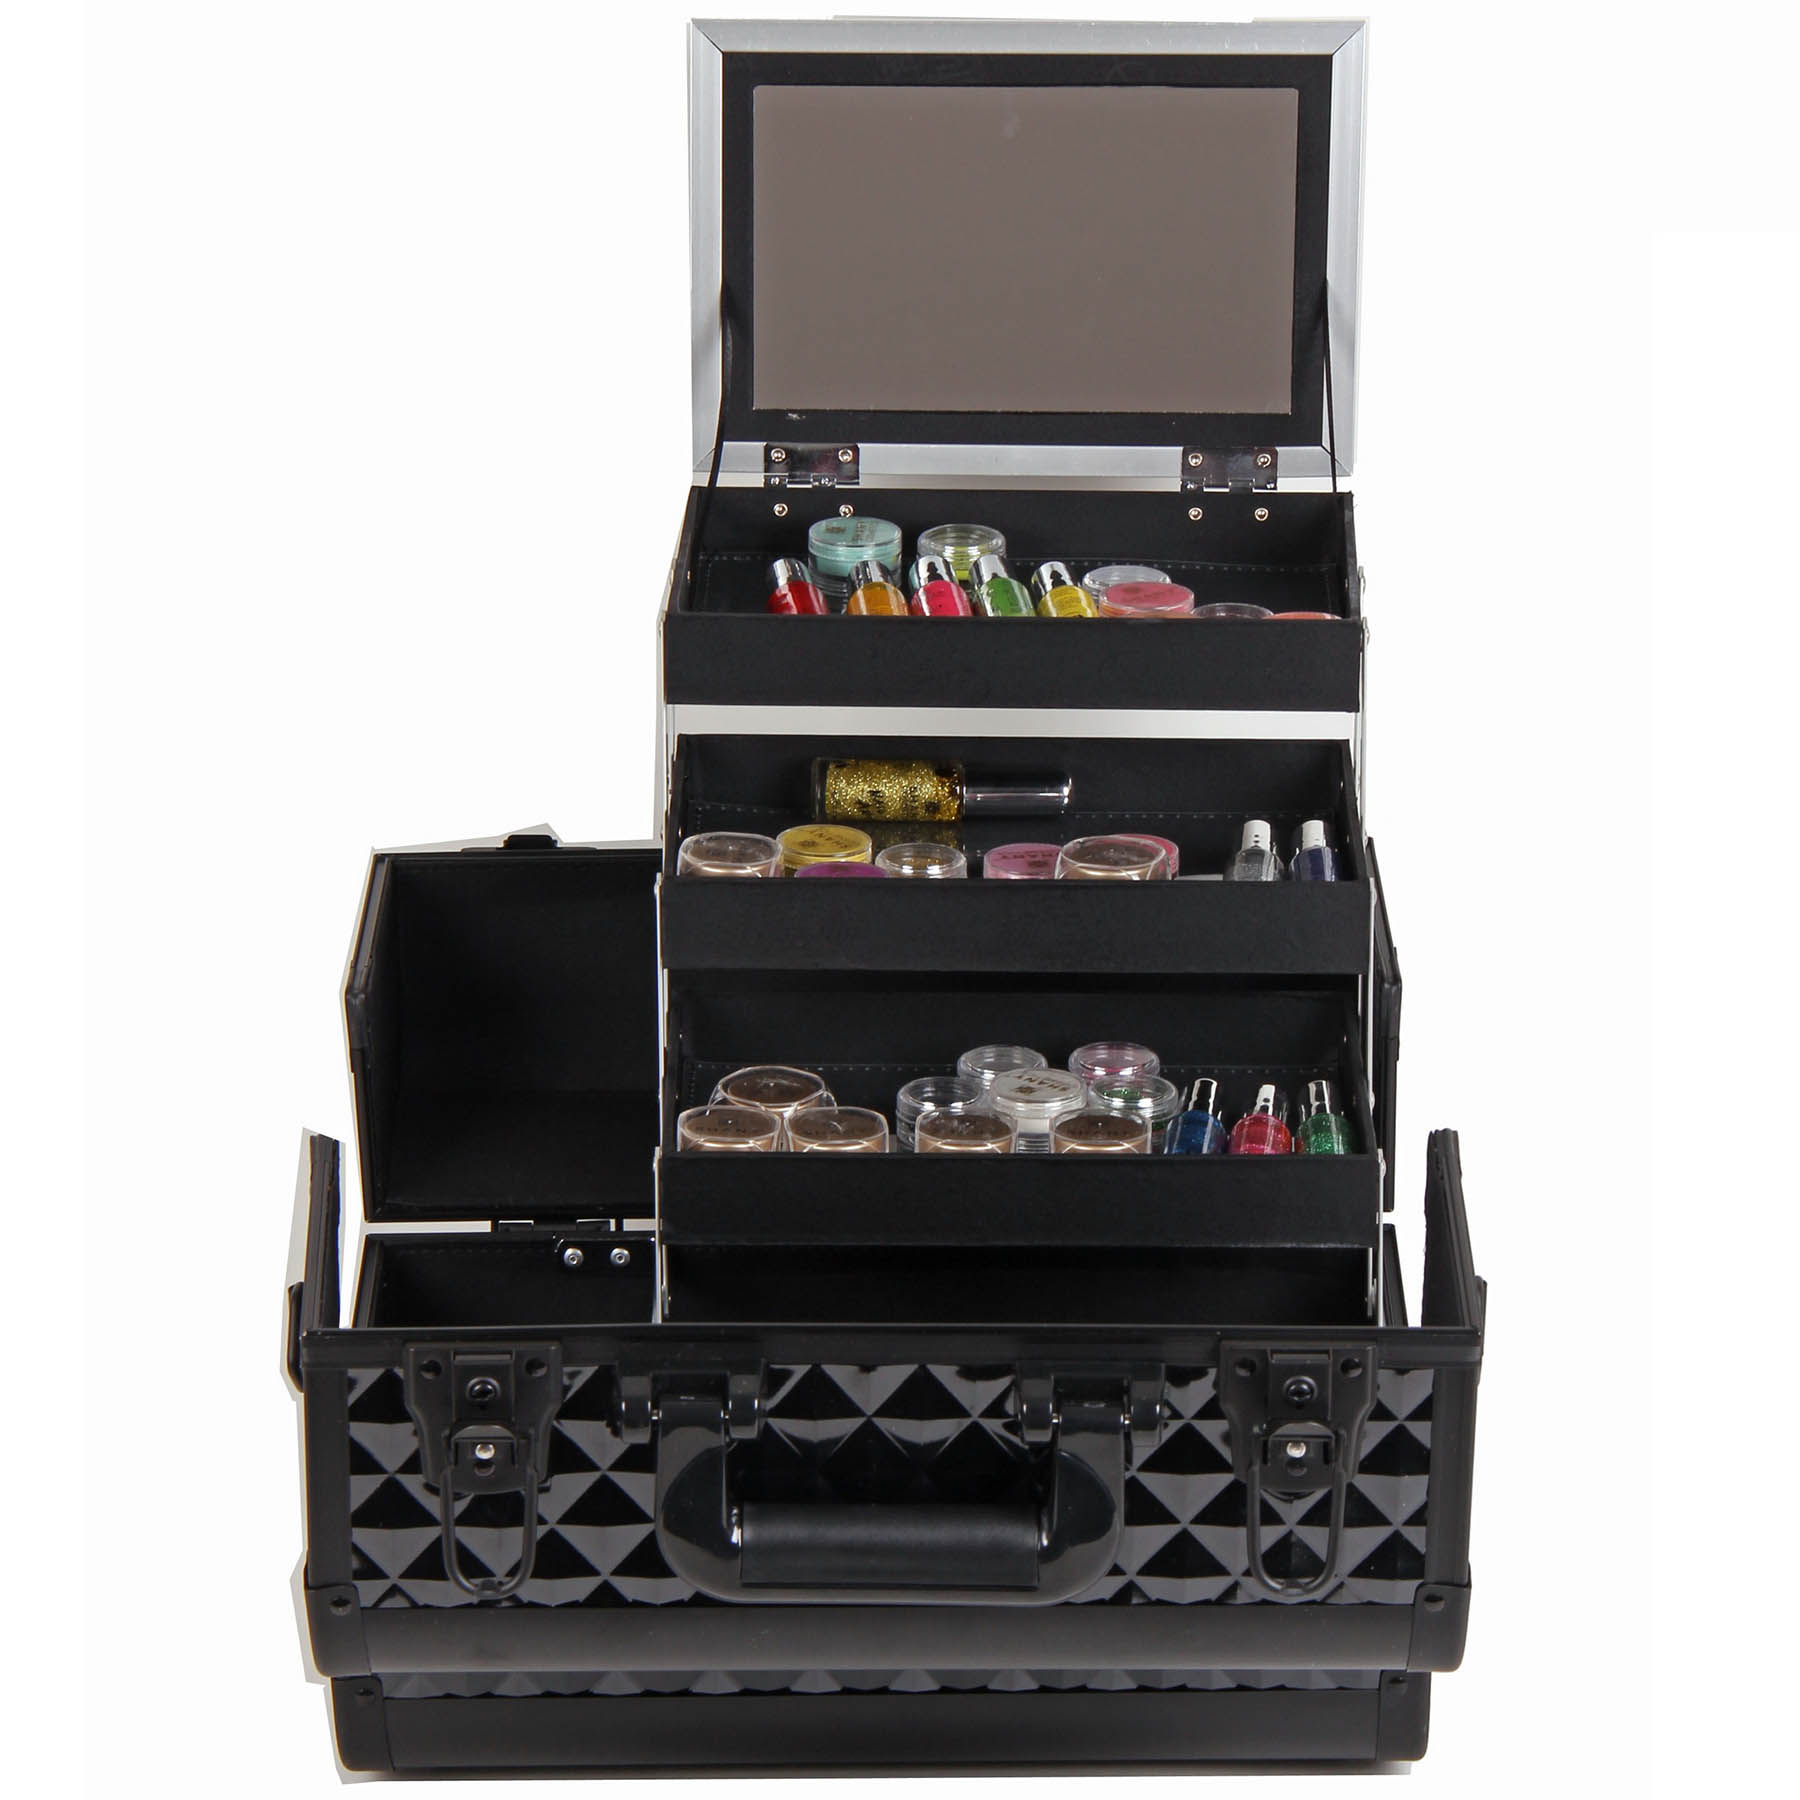 SHANY-Fantasy-Collection-Makeup-Artists-Cosmetics-Train-Case miniature 8